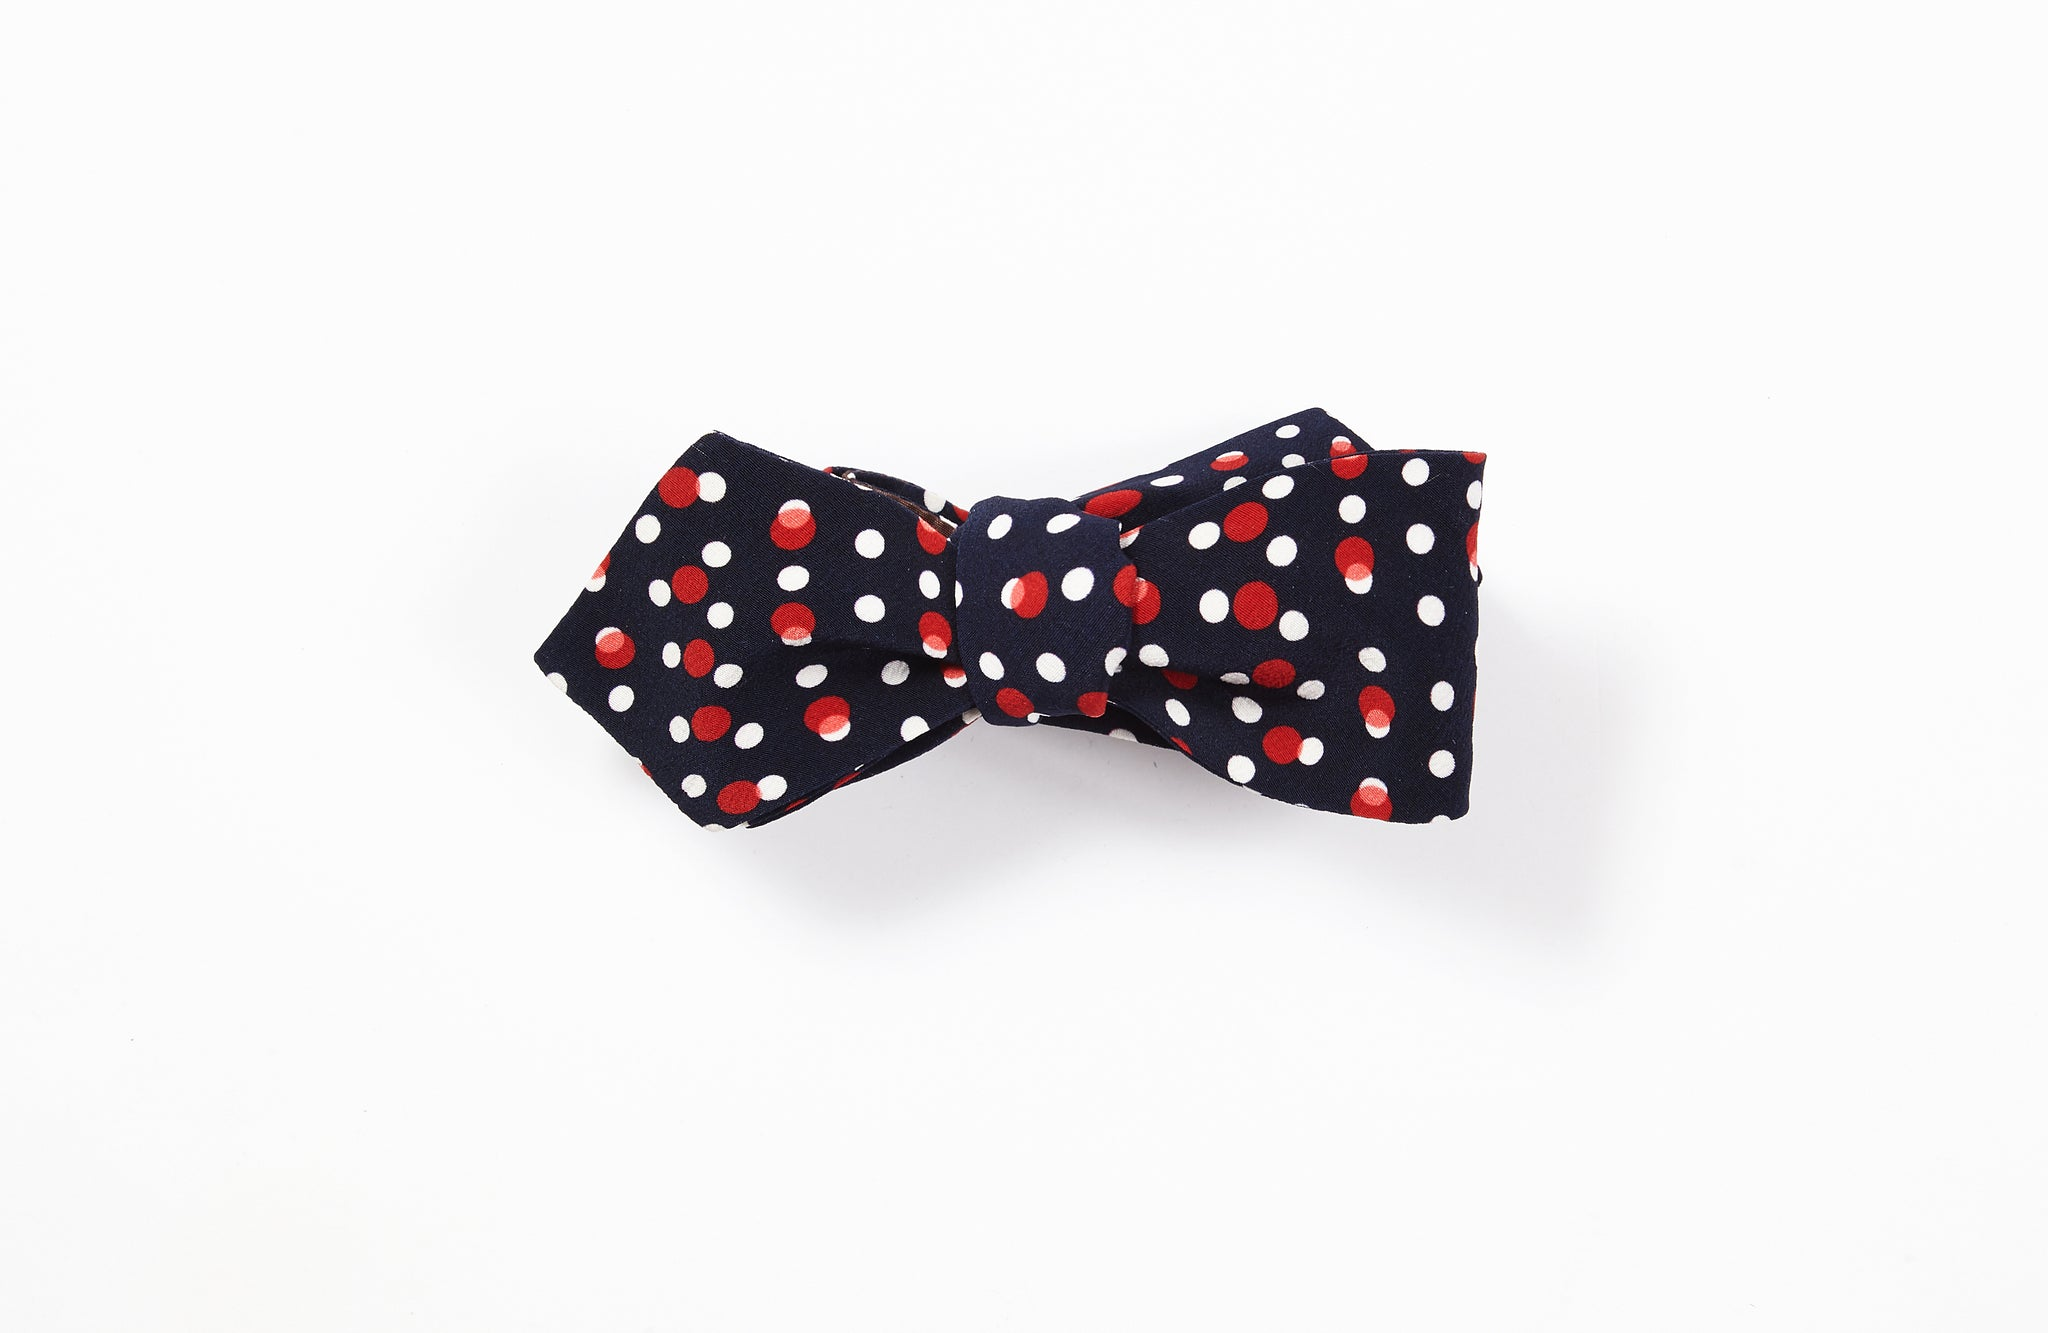 The Double Dot Bow Tie